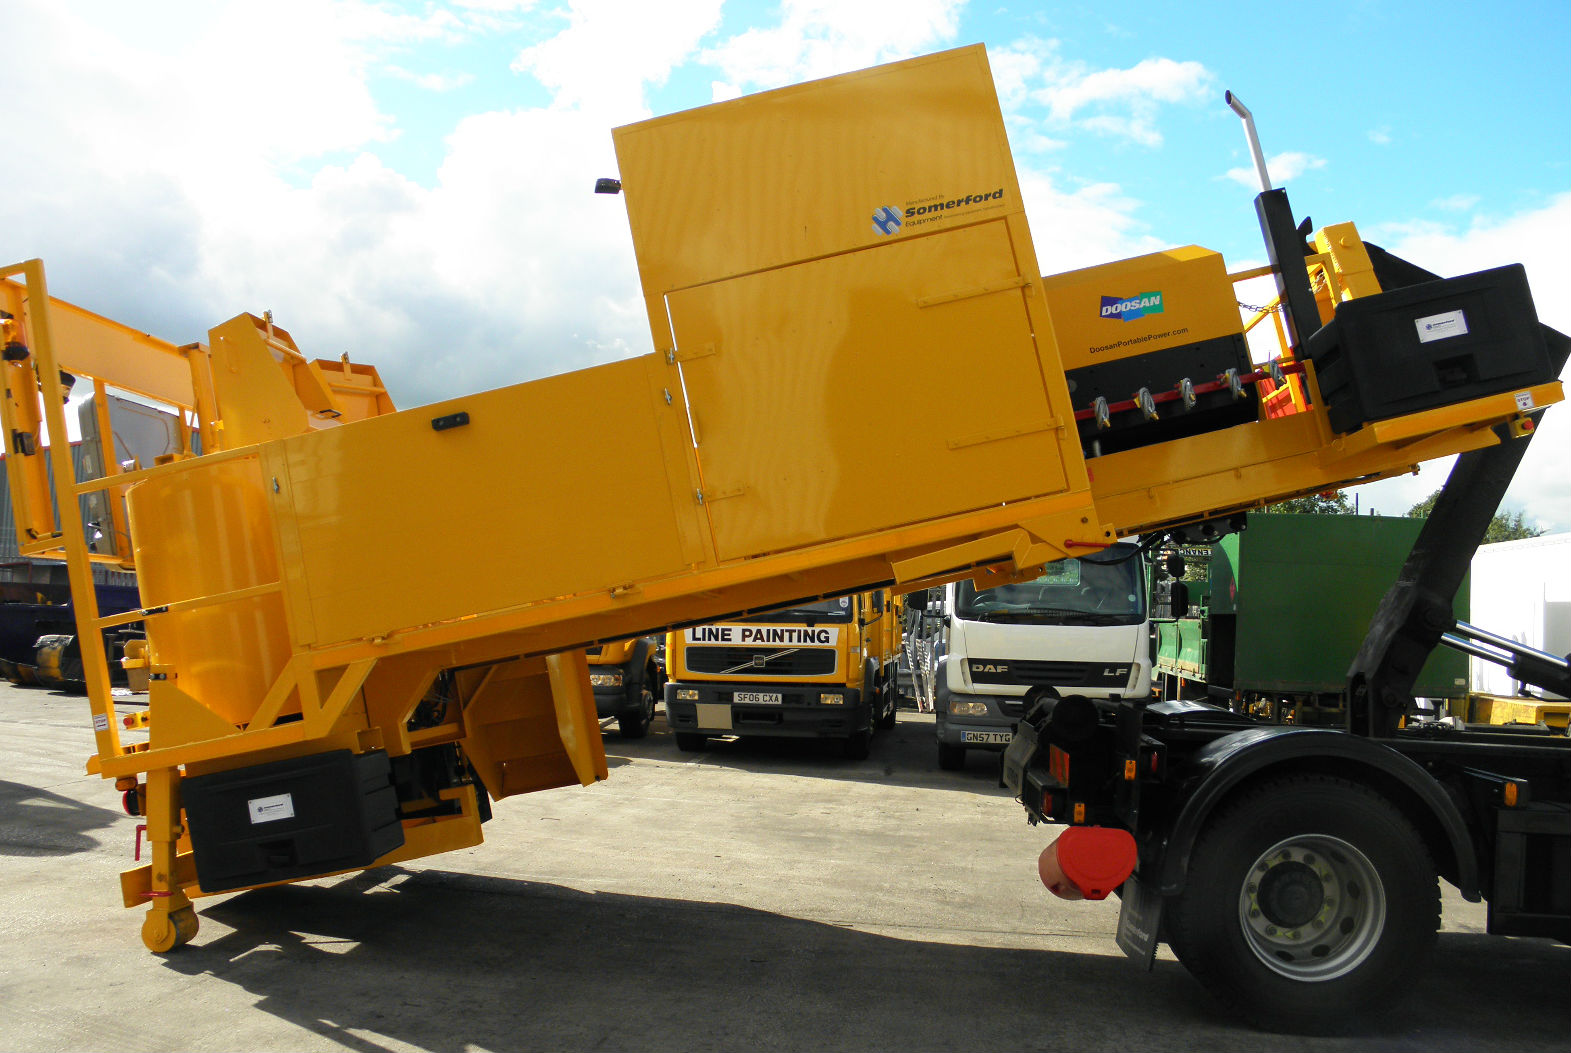 Demountable road marking unit